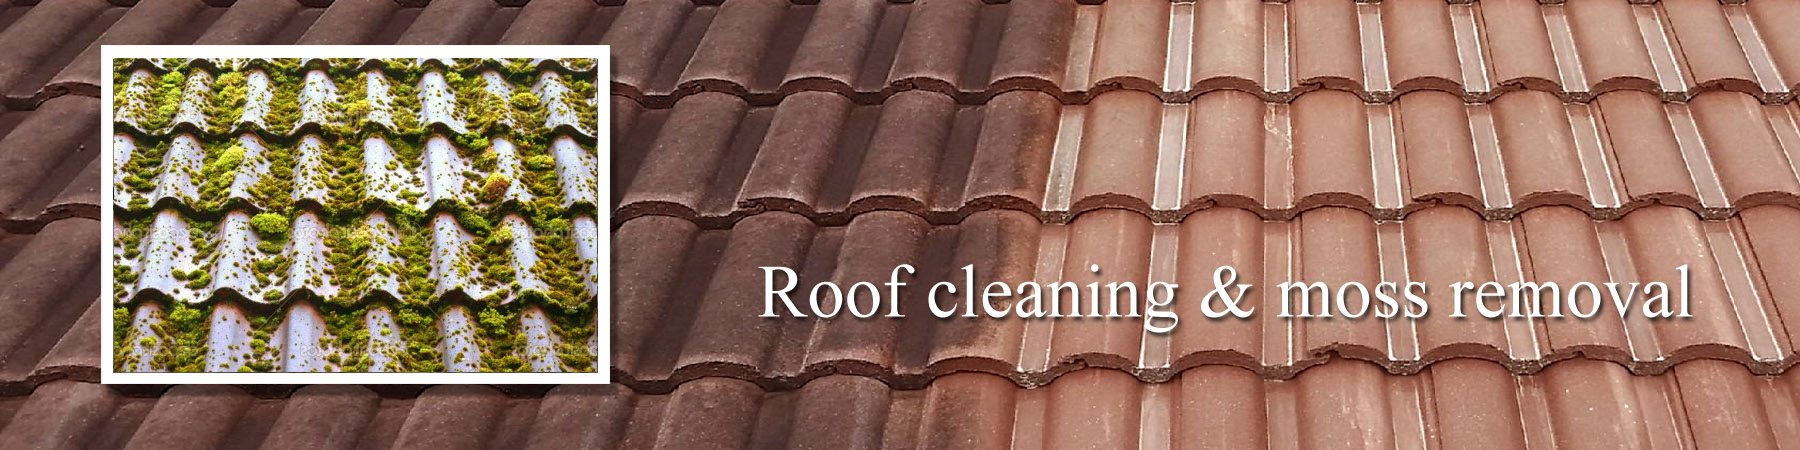 J.R. Roof Cleaning Highbury roof moss removal repairs & coating J R Cleaning